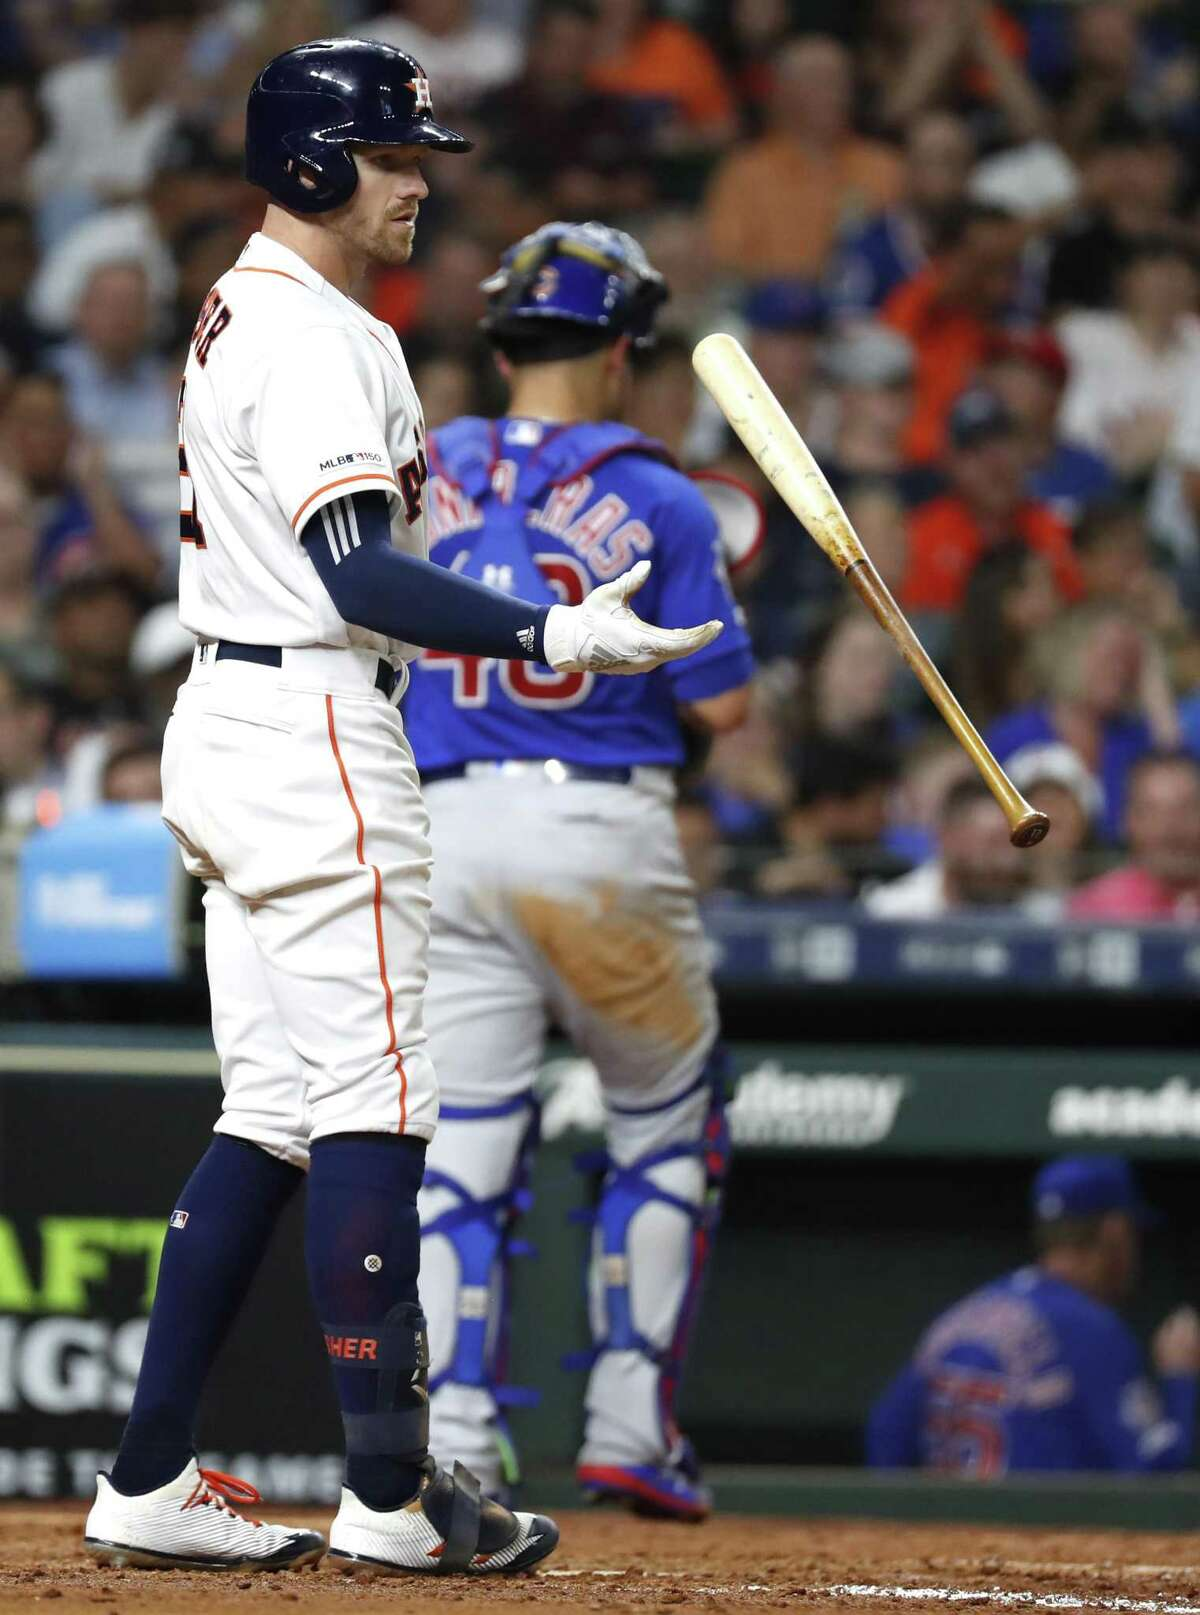 The Astros' Derek Fisher flips his bat after striking out. He fanned three times in the game.